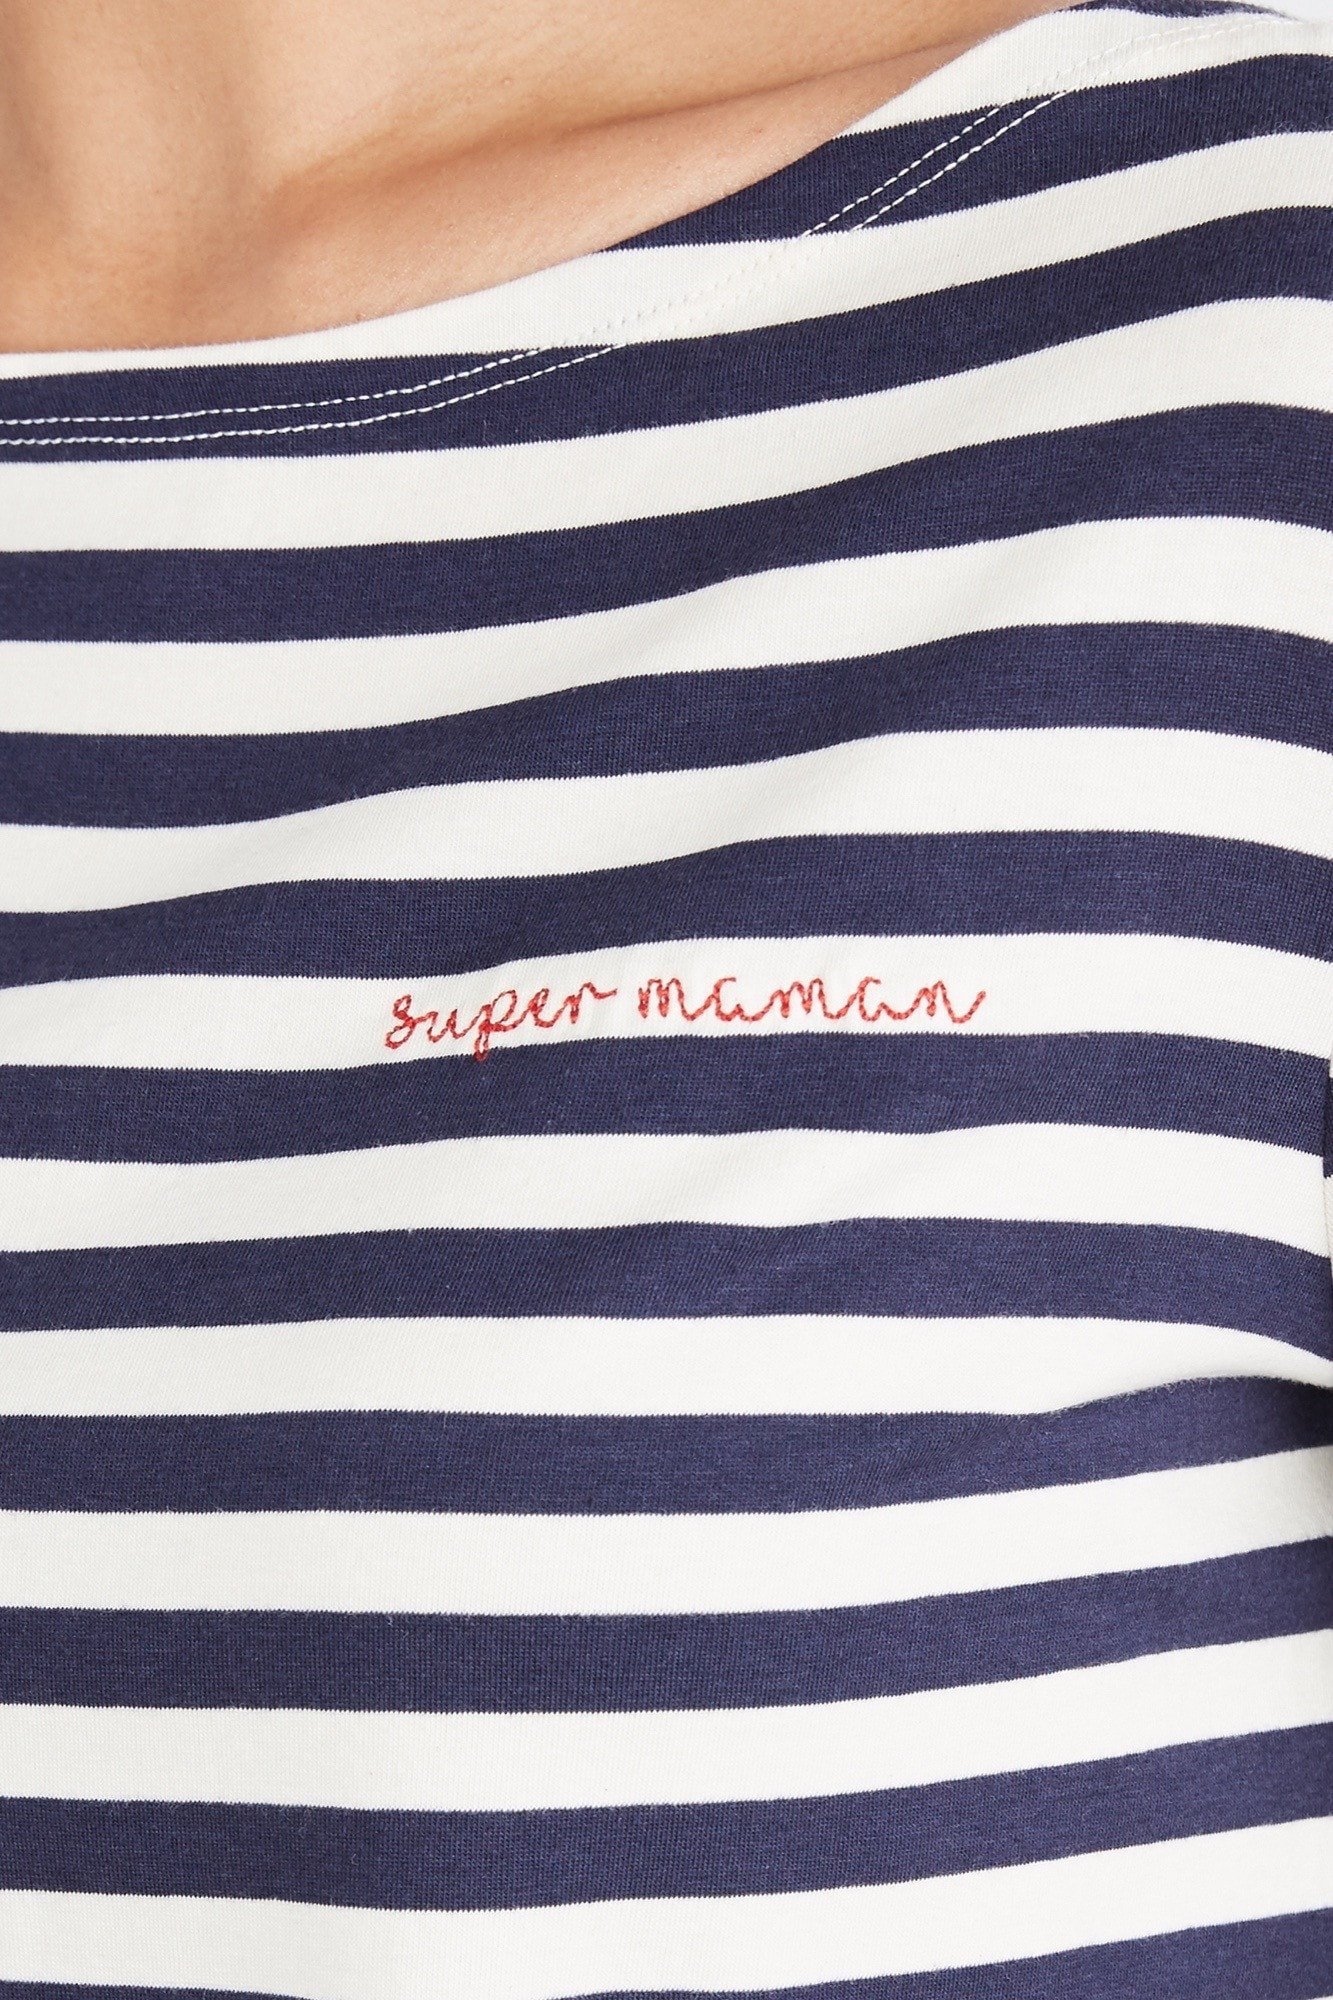 Amour Vert Tee, $78 - Amour Vert's Super Maman (French for Super Mom) tee is a très chic (and eco-friendly!) addition to any mama's wardrobe. The navy and white striped, long-sleeved style is made in the US from an organic cotton and modal blend, and it's impossibly soft.